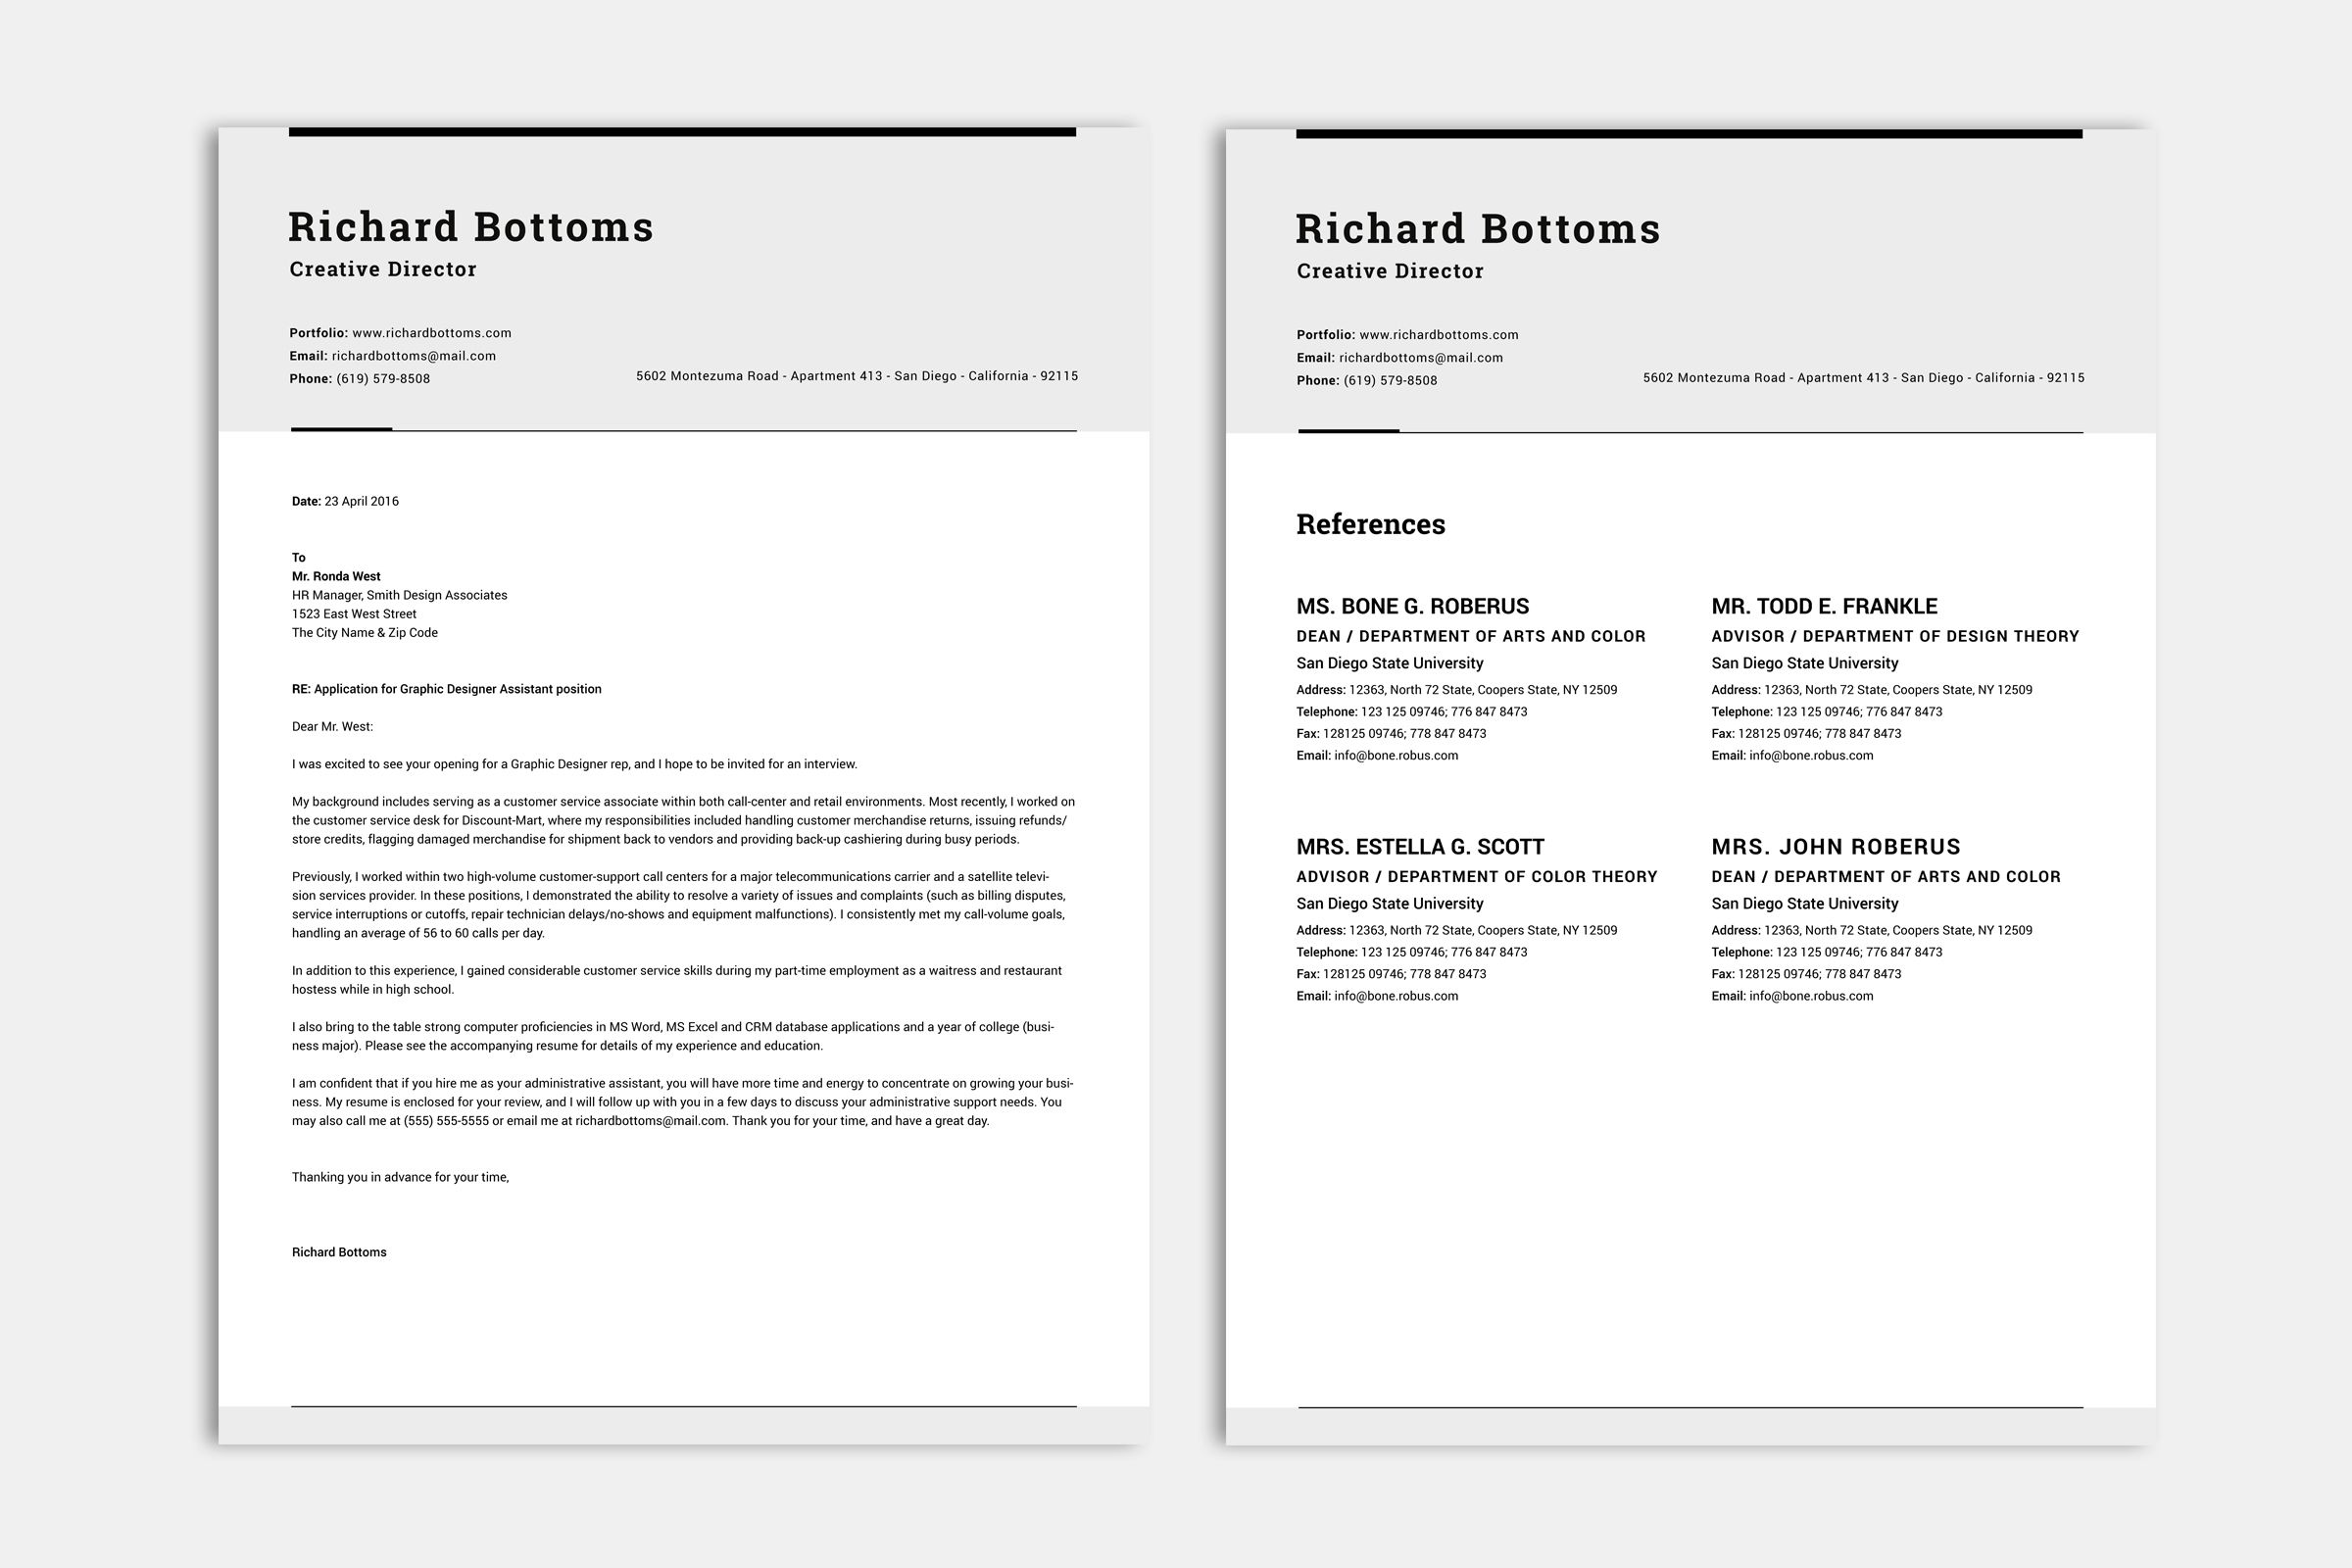 resume box for job experts vol 2 by snipescientist on